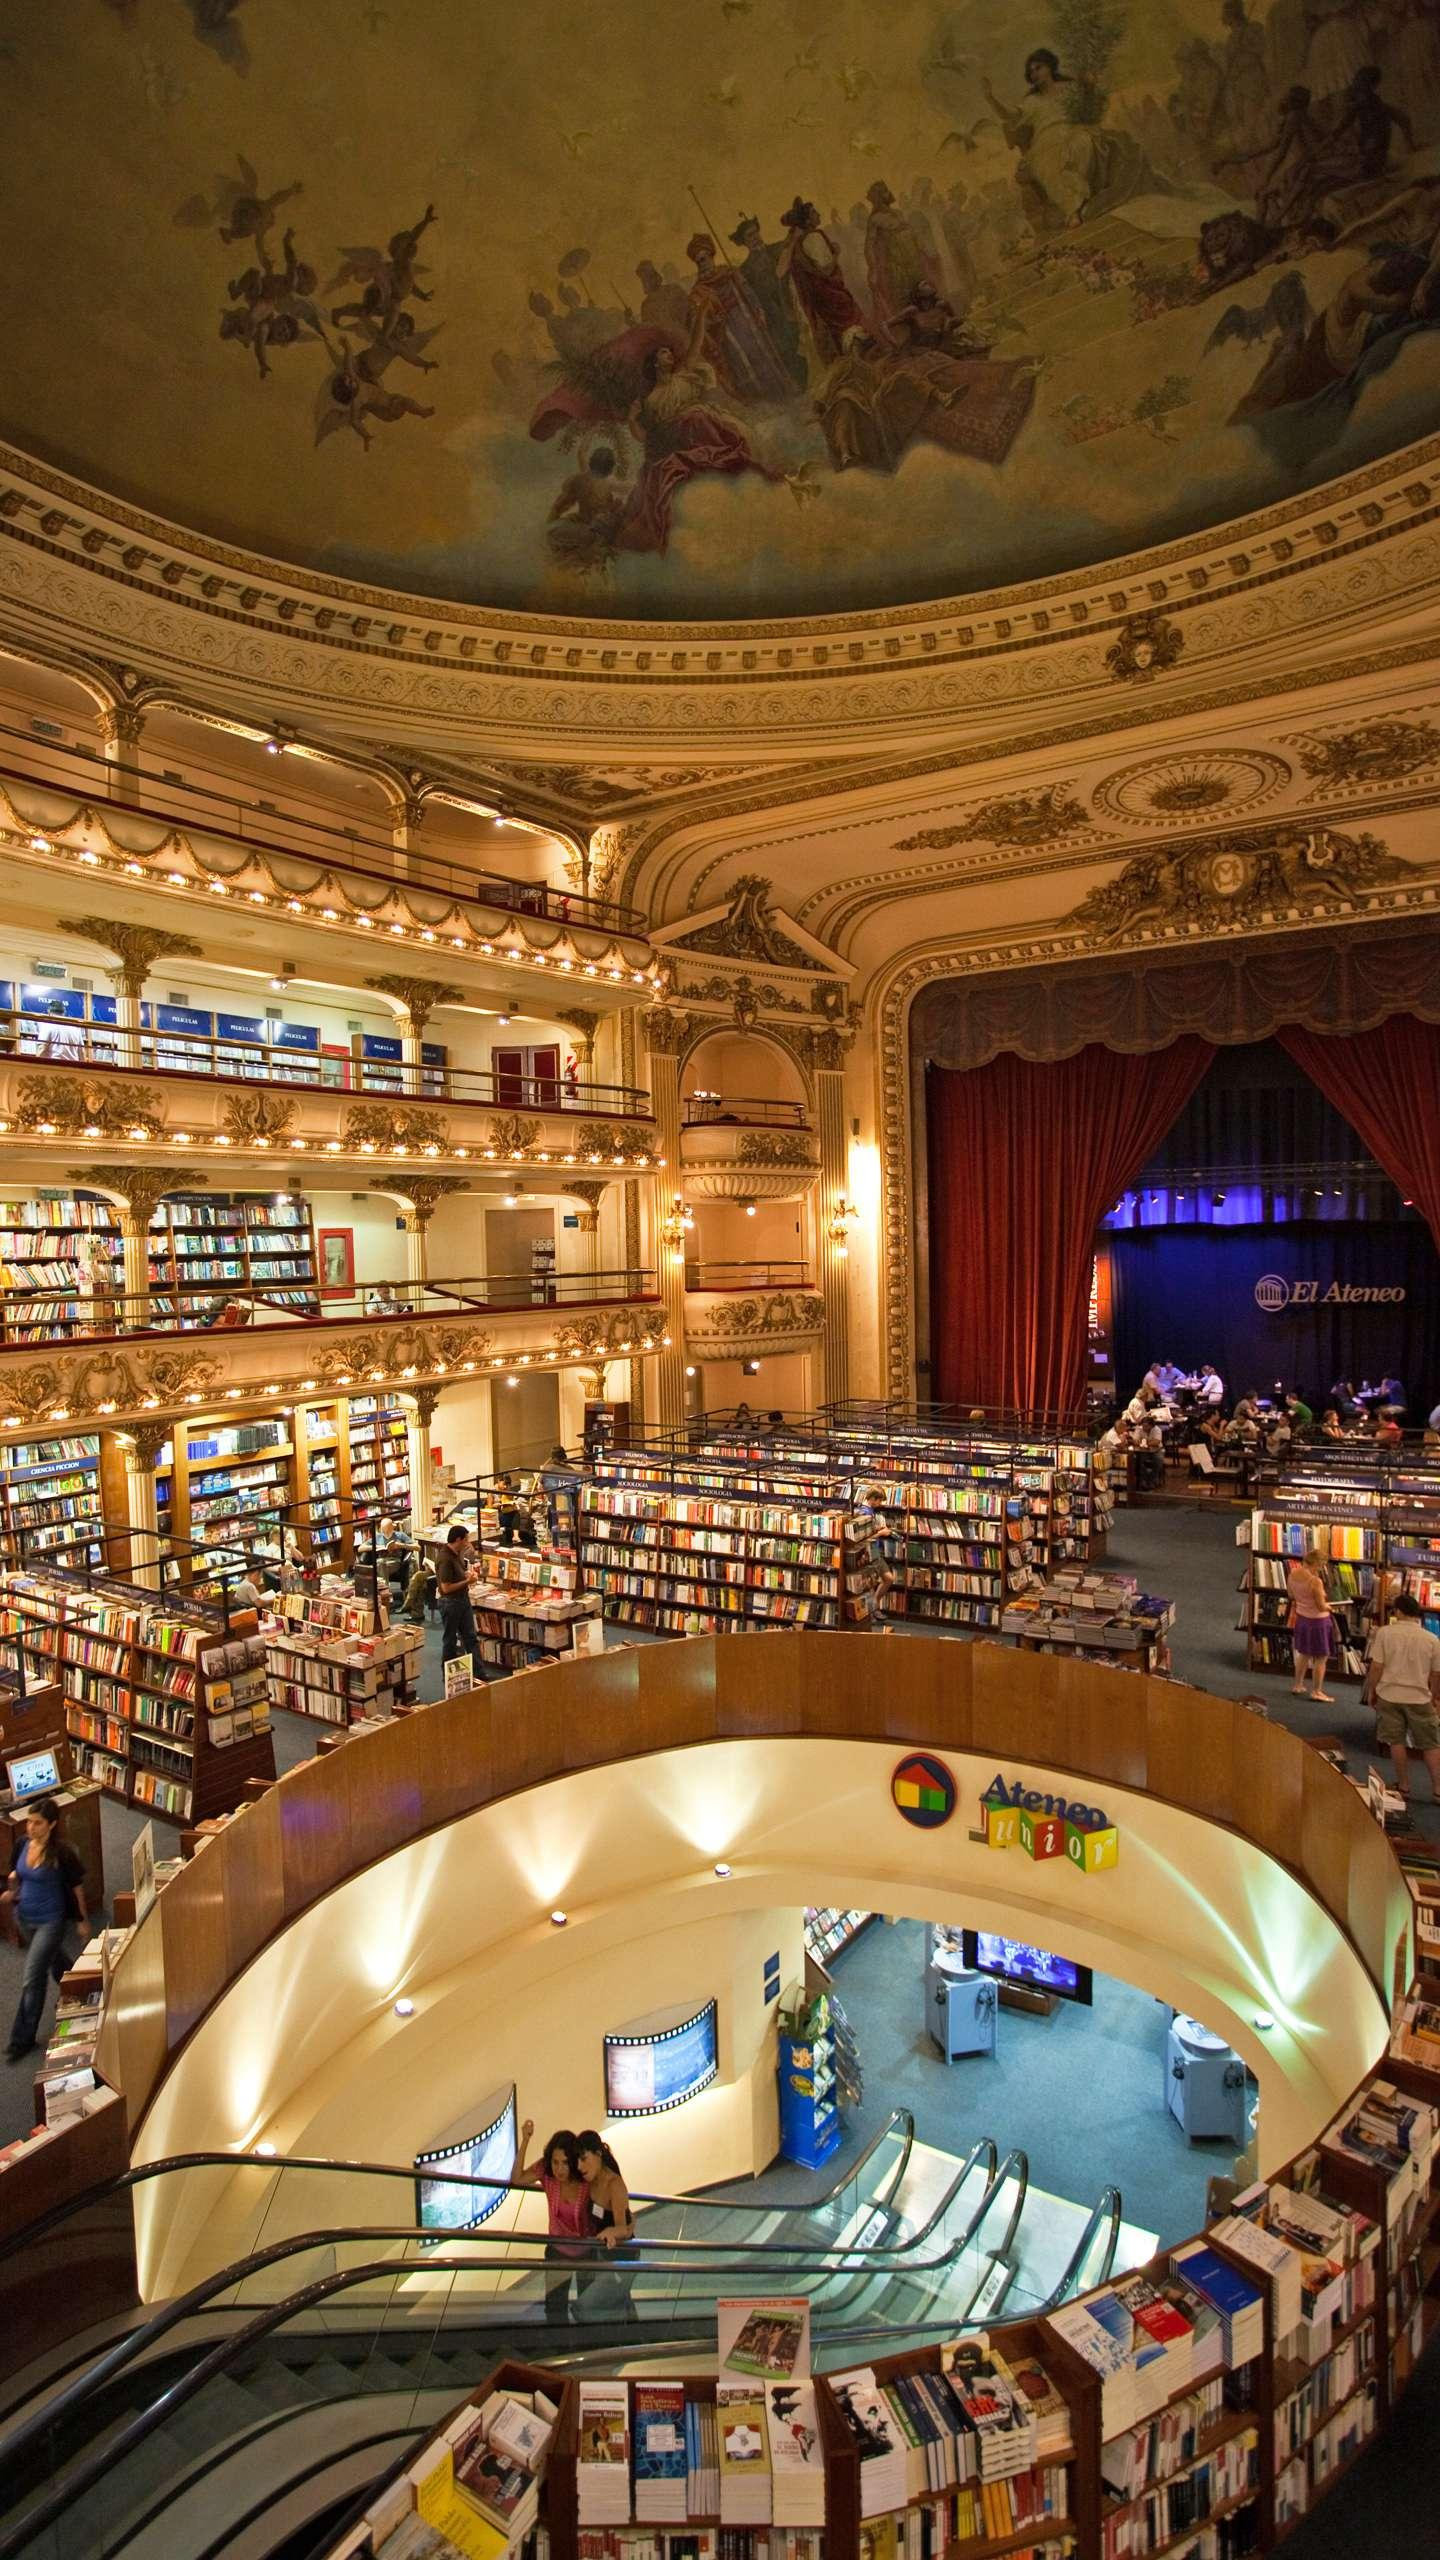 Athenian bookstore. Reconstructed from an old theatre, the bookstore has a total area of ​​more than 2,000 square meters and is the largest and most luxurious bookstore in South America.